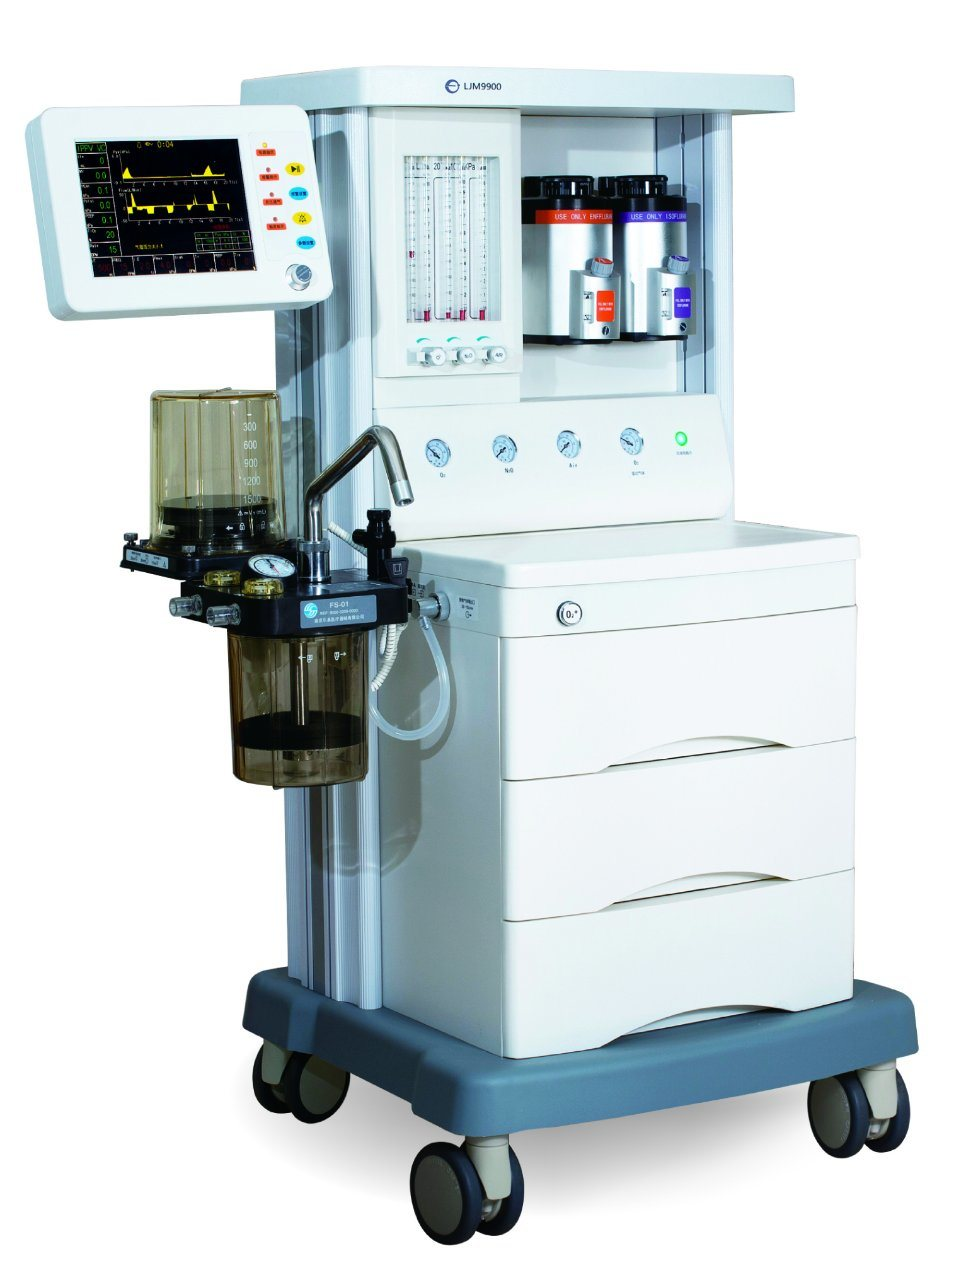 Medical Anaesthesia/Anesthesia Machine Ljm 9900 with Ce Certificate